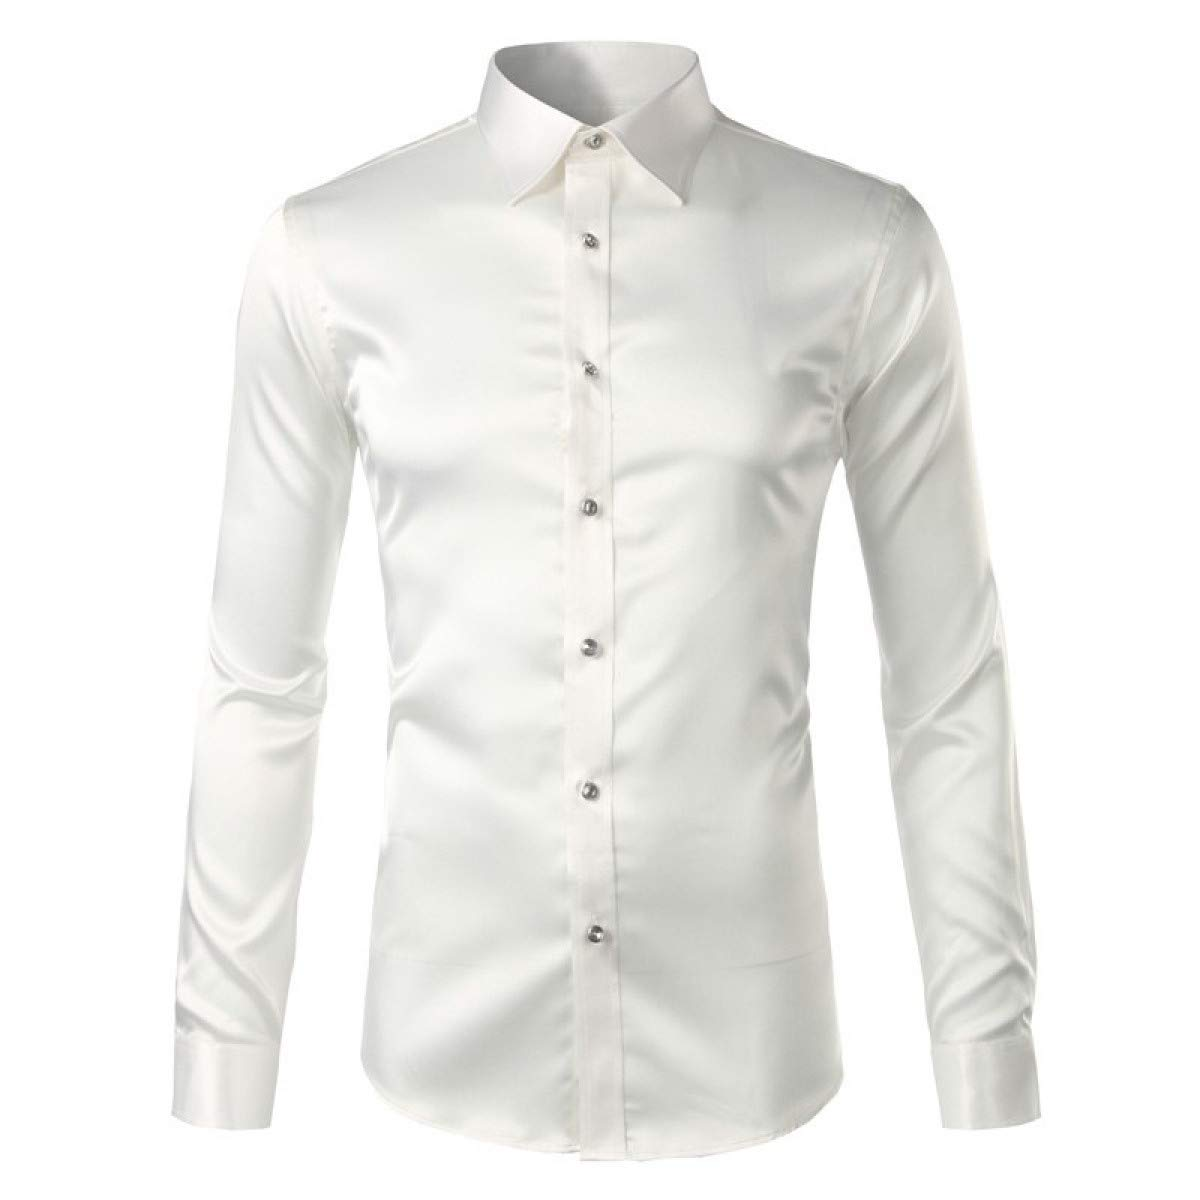 Weding Dress Shirt Collar